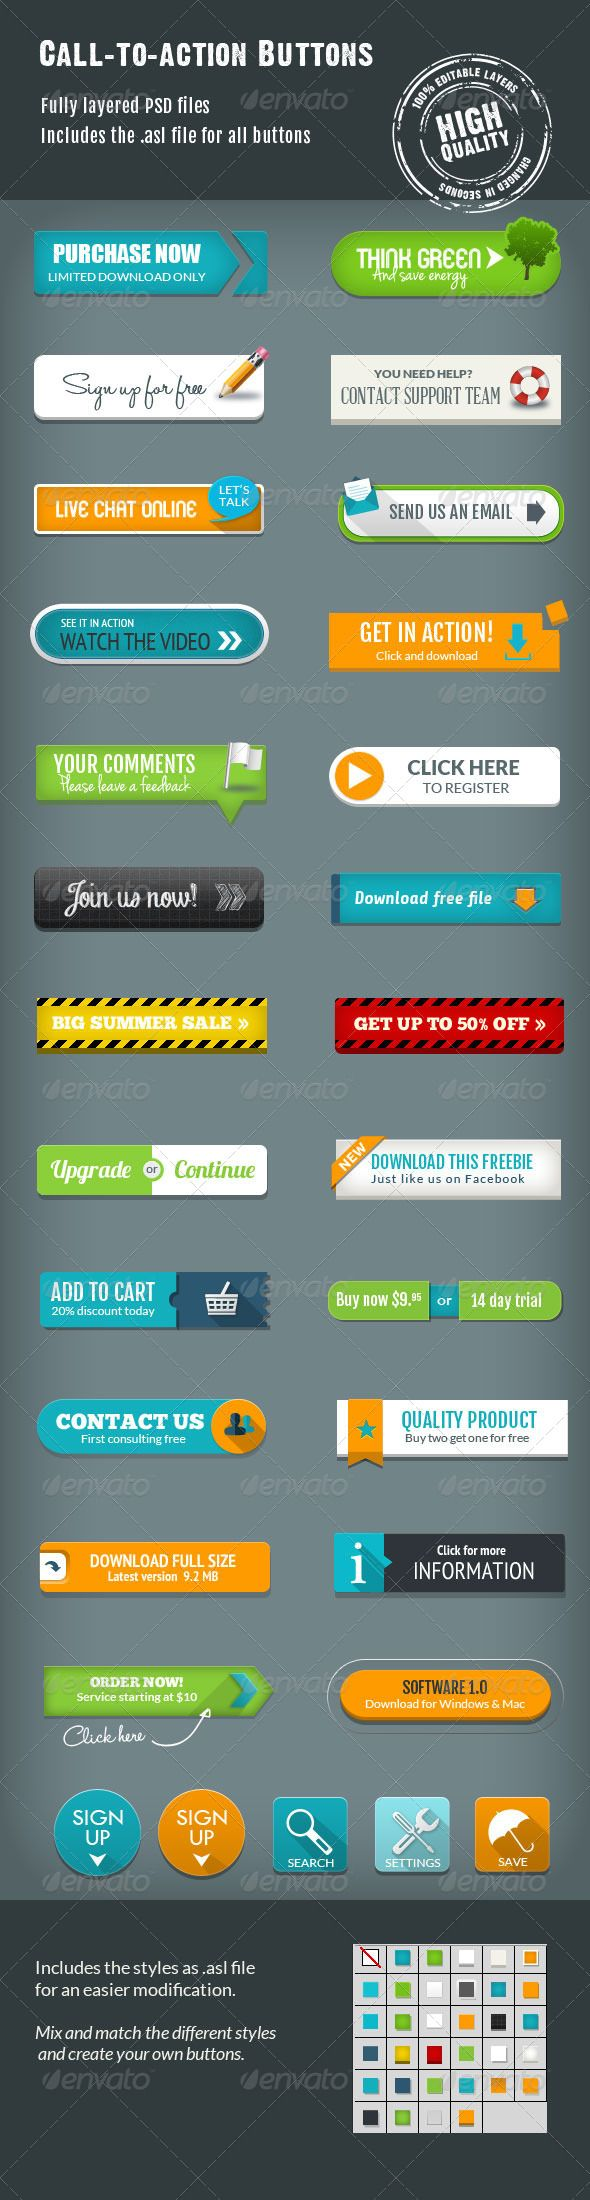 Call-To-Action Buttons Vol.III (Photoshop PSD, JPG Image, CS3, button, buttons, call to action, download button, shop button, vector, vector shape, web 2.0)